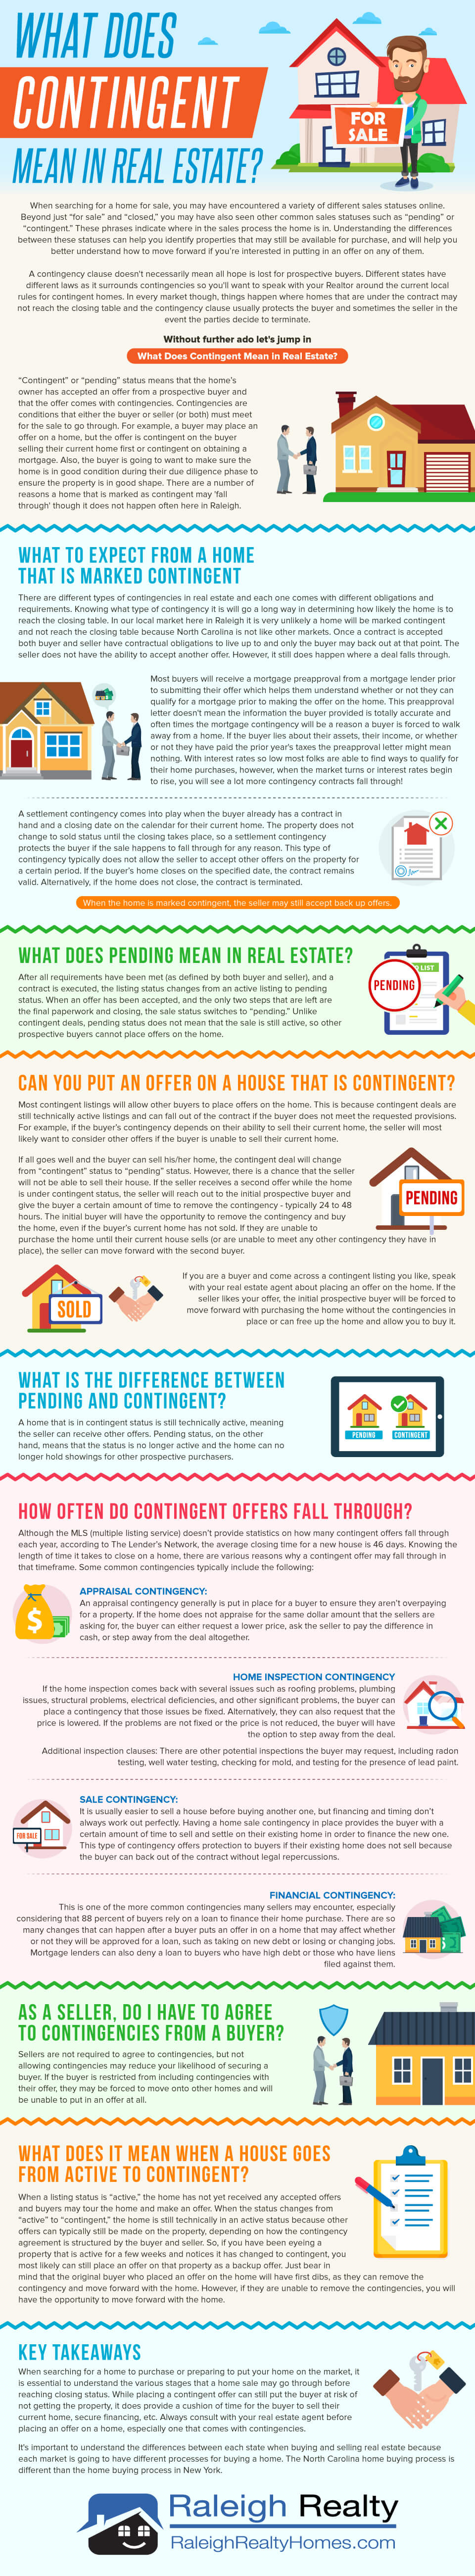 What Does Contingent Mean in Real Estate - 7 Takeaways on what contingent means!